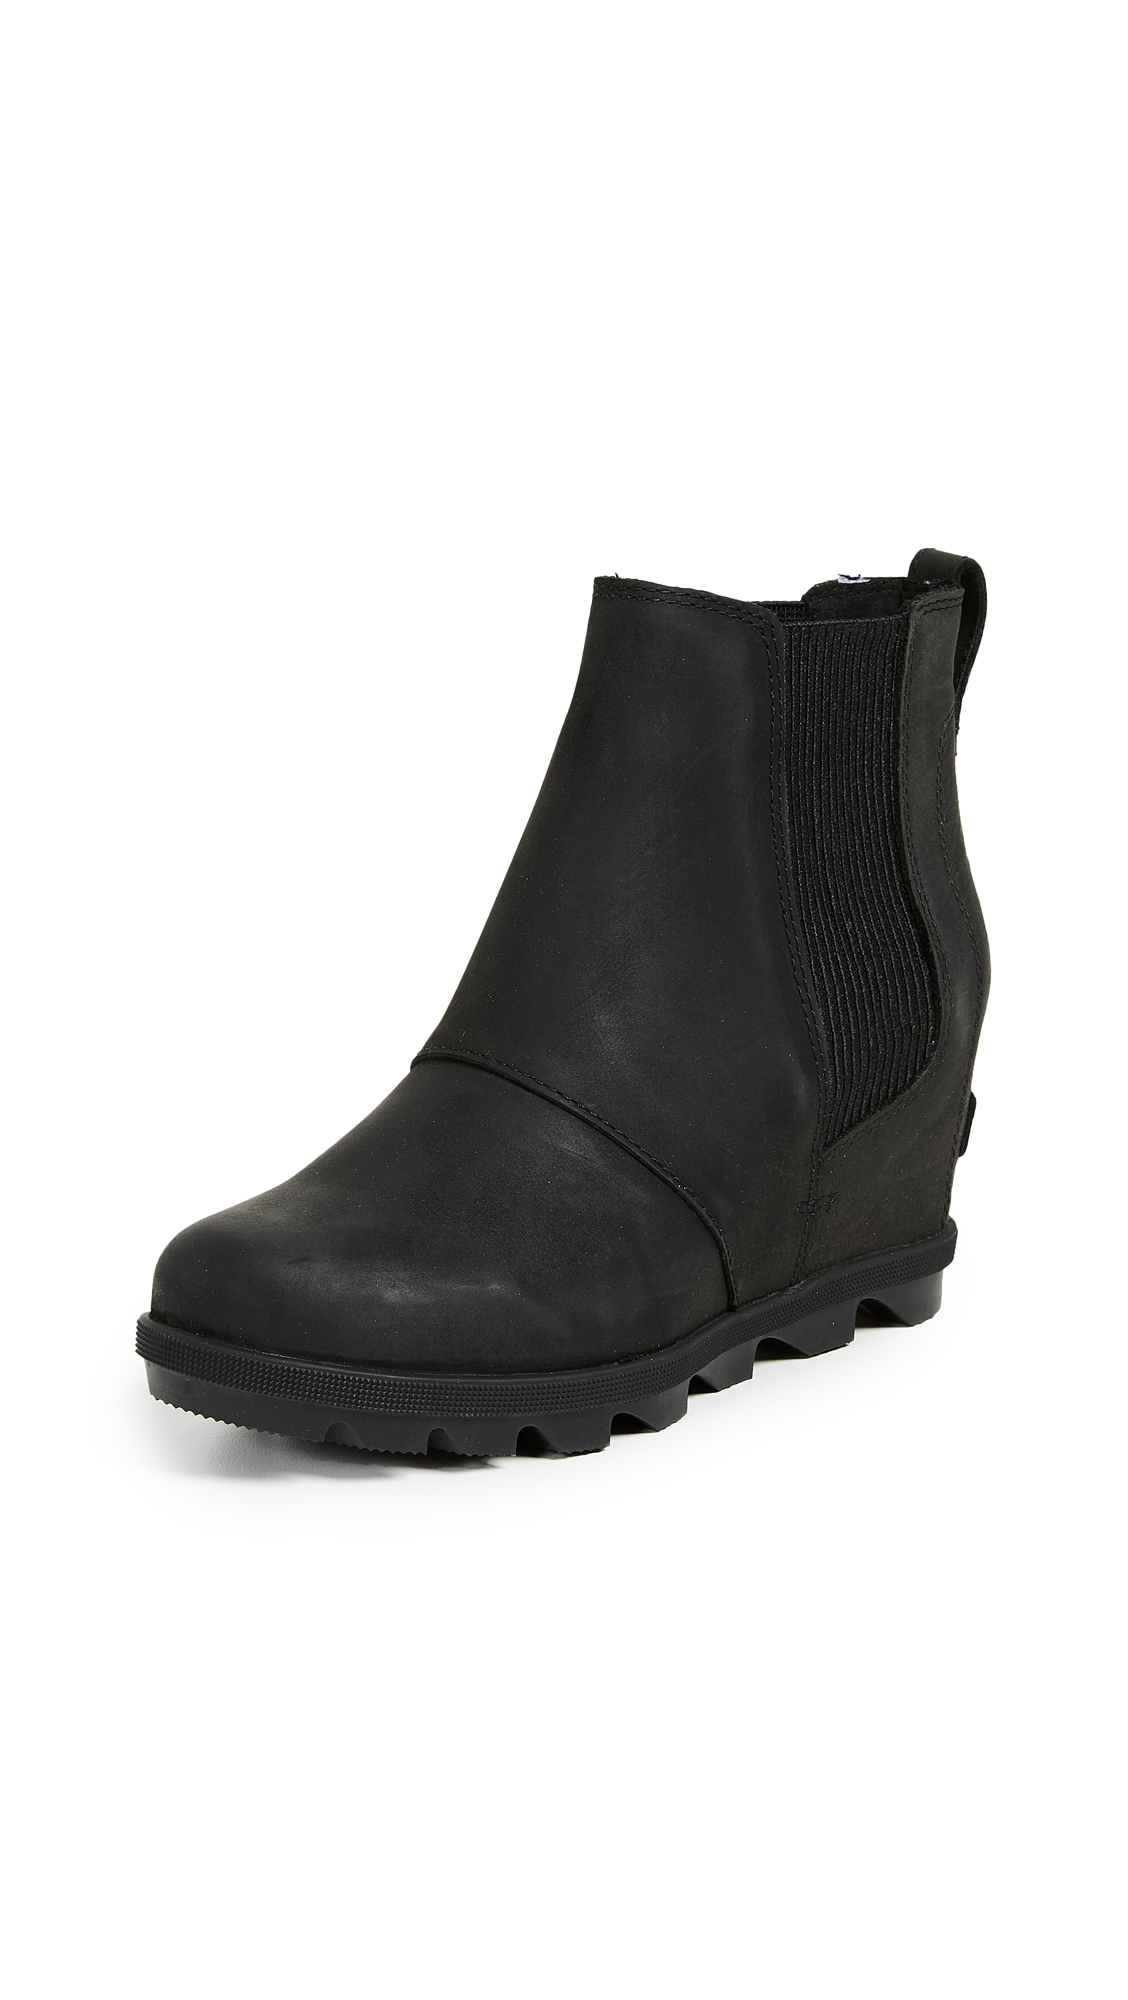 Sorel Joan of Arctic Wedge II Chelsea Boots - Black